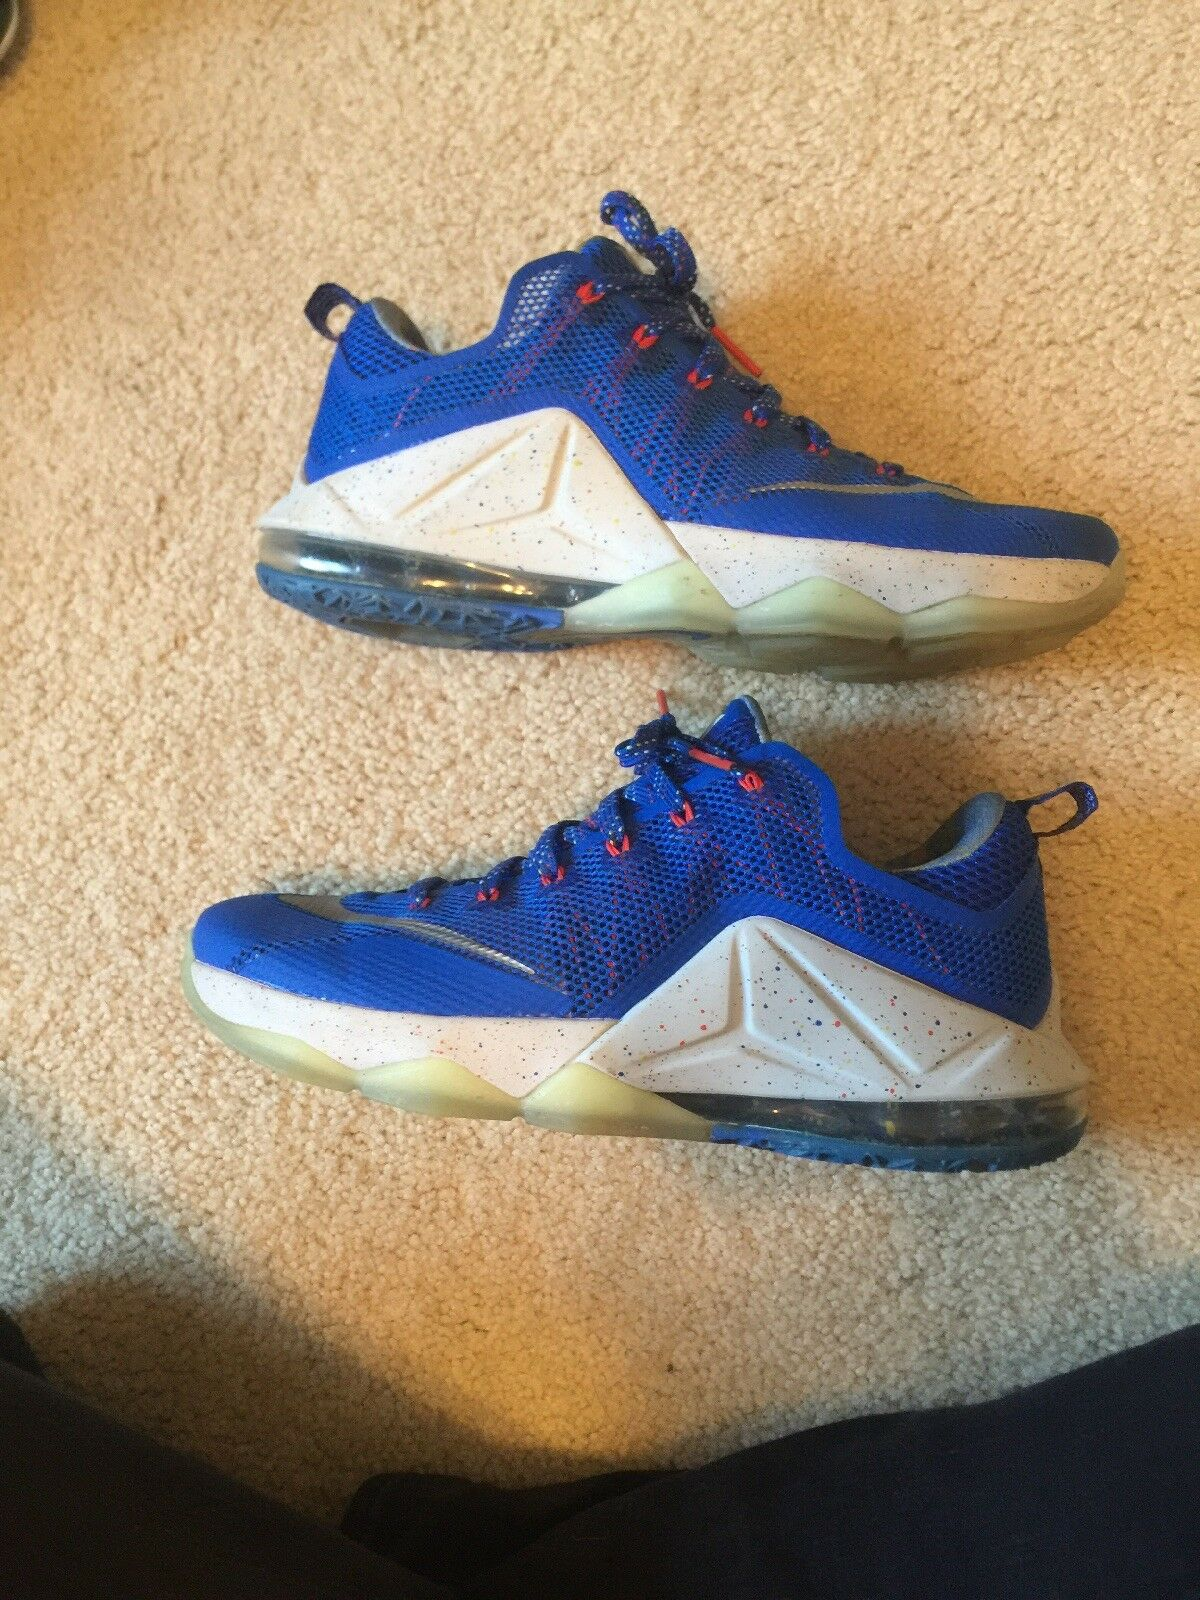 Nike Lebron XII Low LMTD Size 11 812560-406 Rise Limited Edition